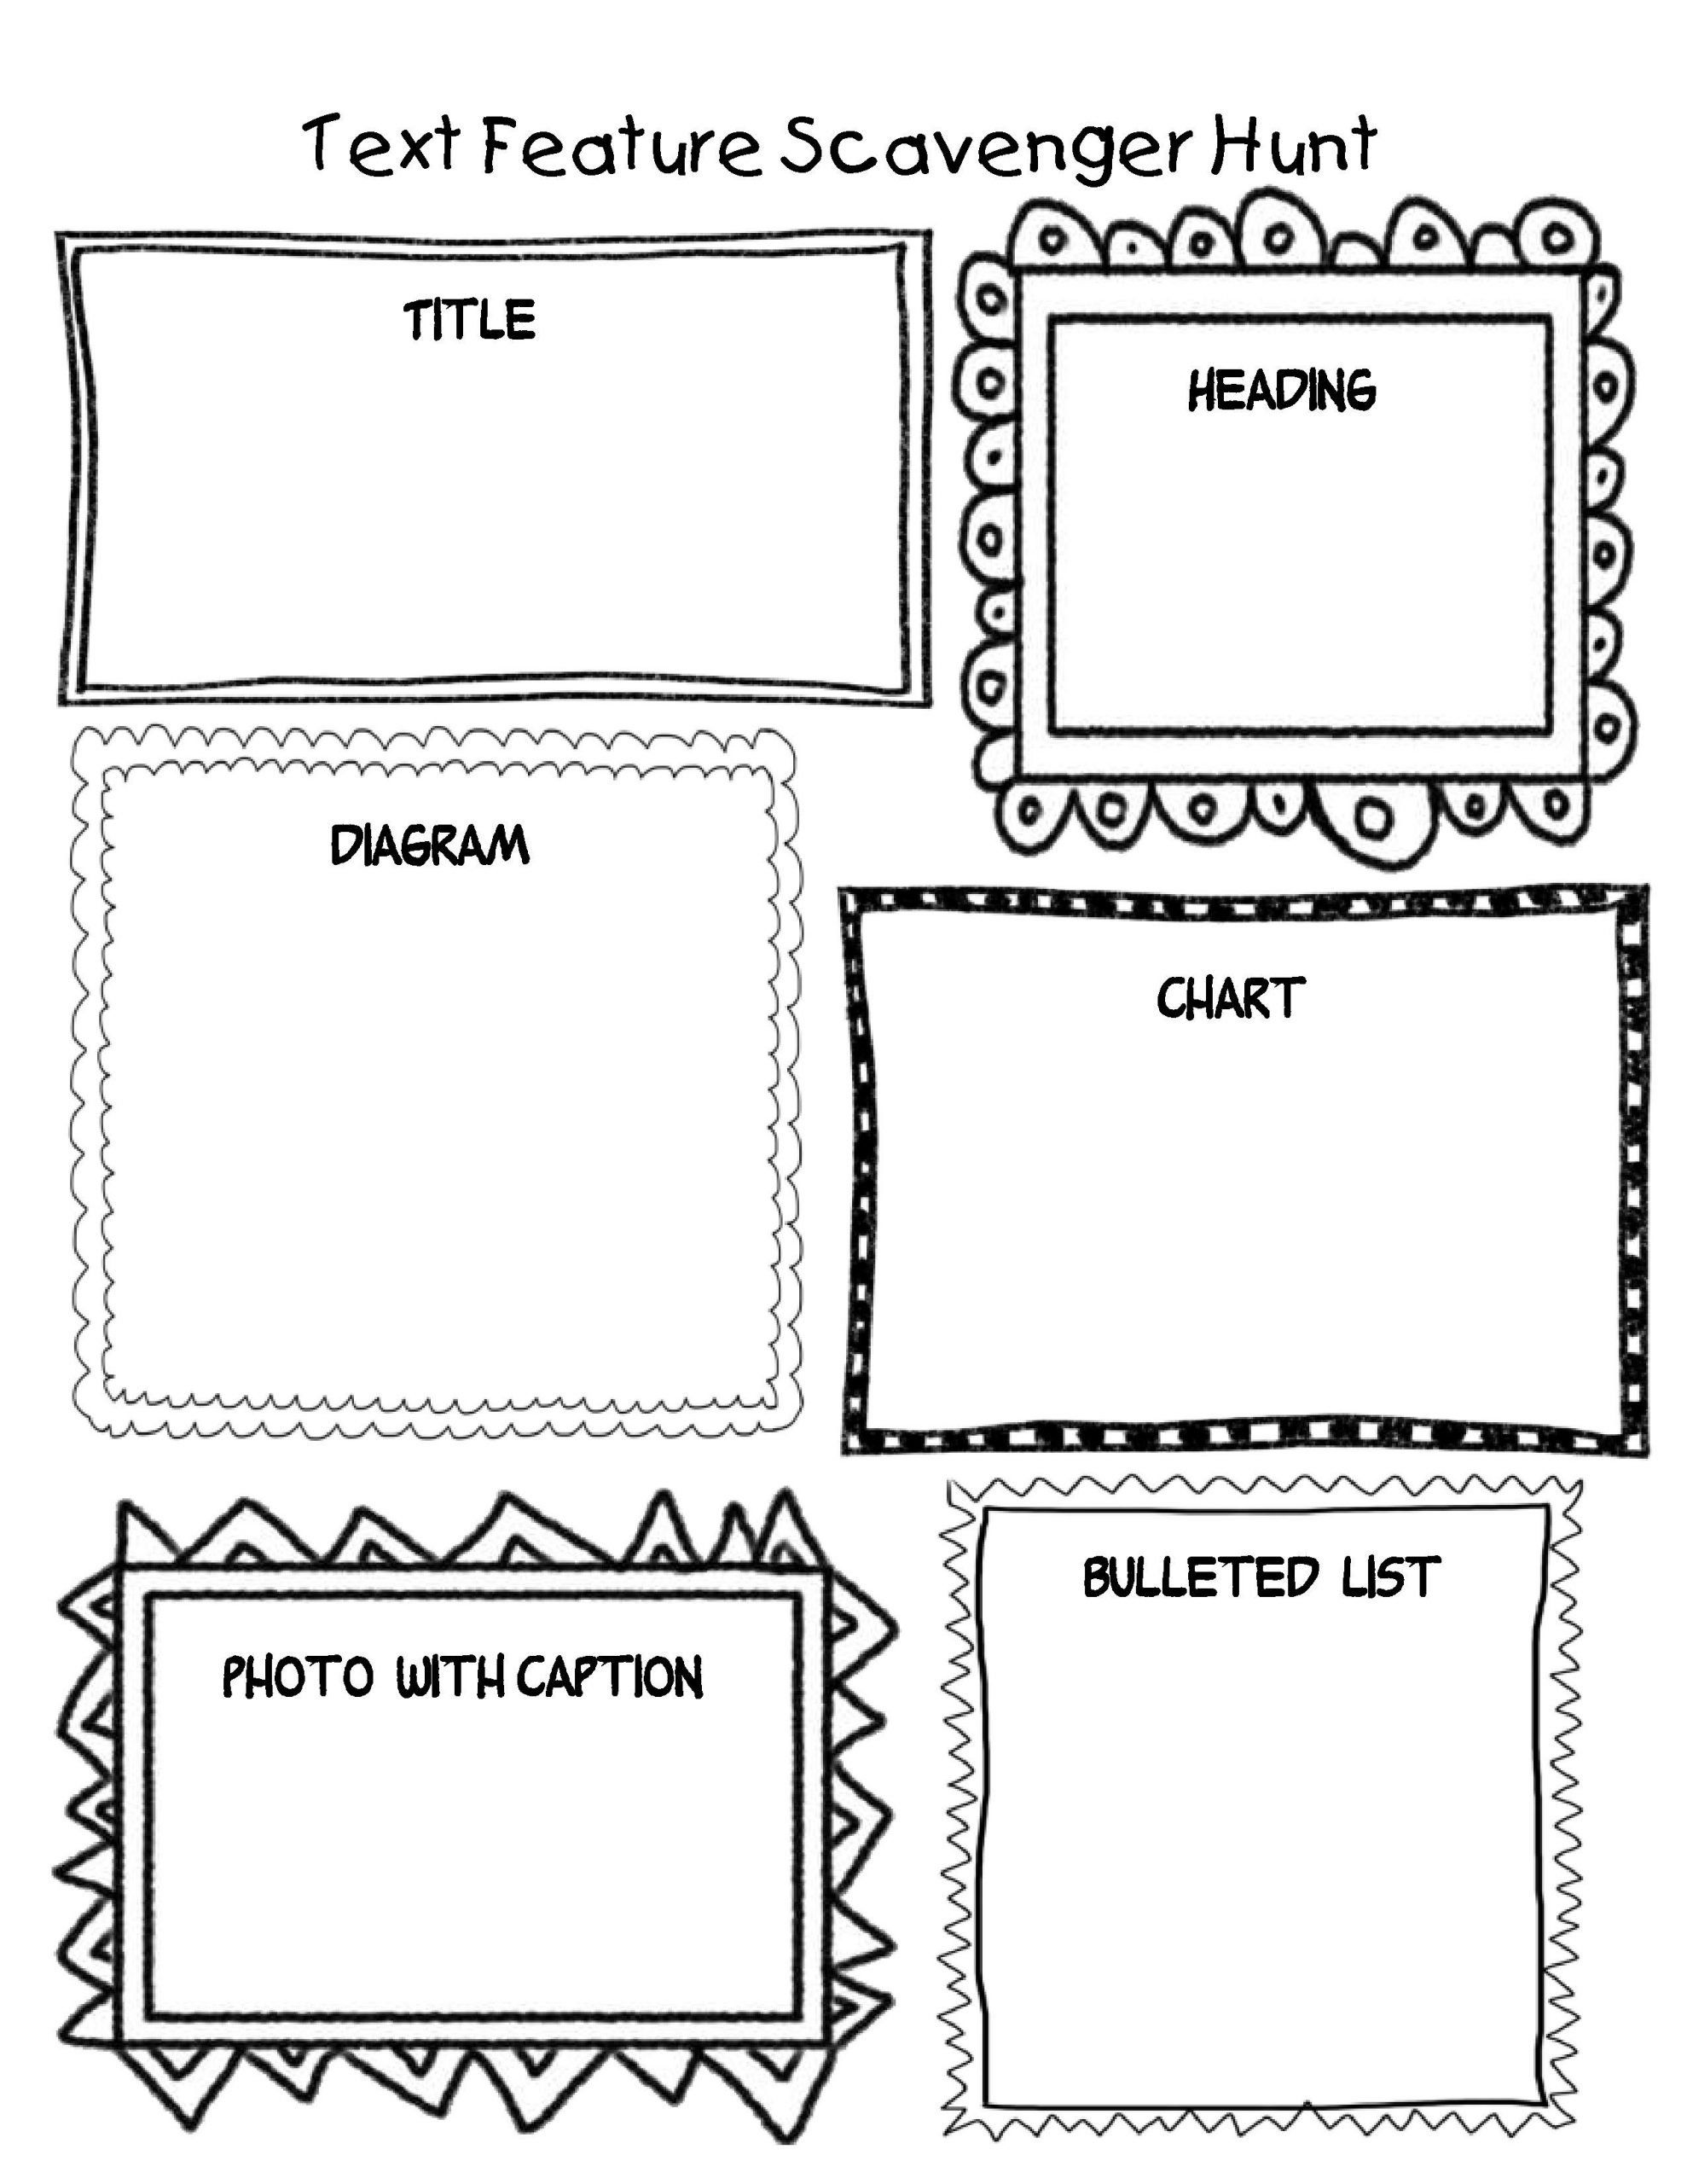 2nd Grade Text Features Worksheet Navigating Nonfiction Text In The Mon Core Classroom In 2020 Text Features Worksheet Text Features Activities Text Features